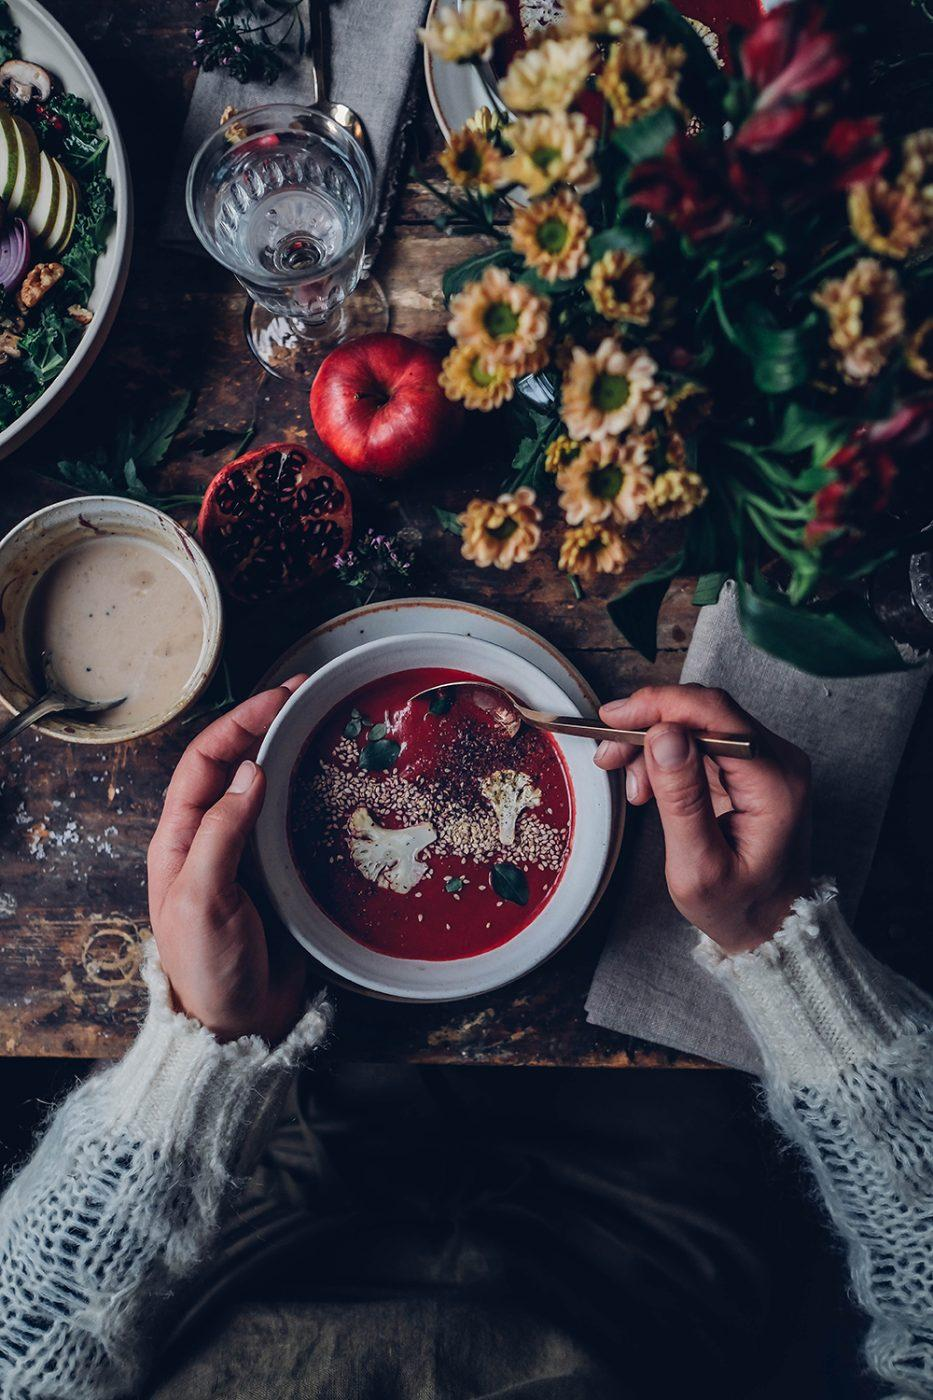 Image for Kale Salad, Beetroot Soup and the new Vegetarian Cookbook from EDEKA